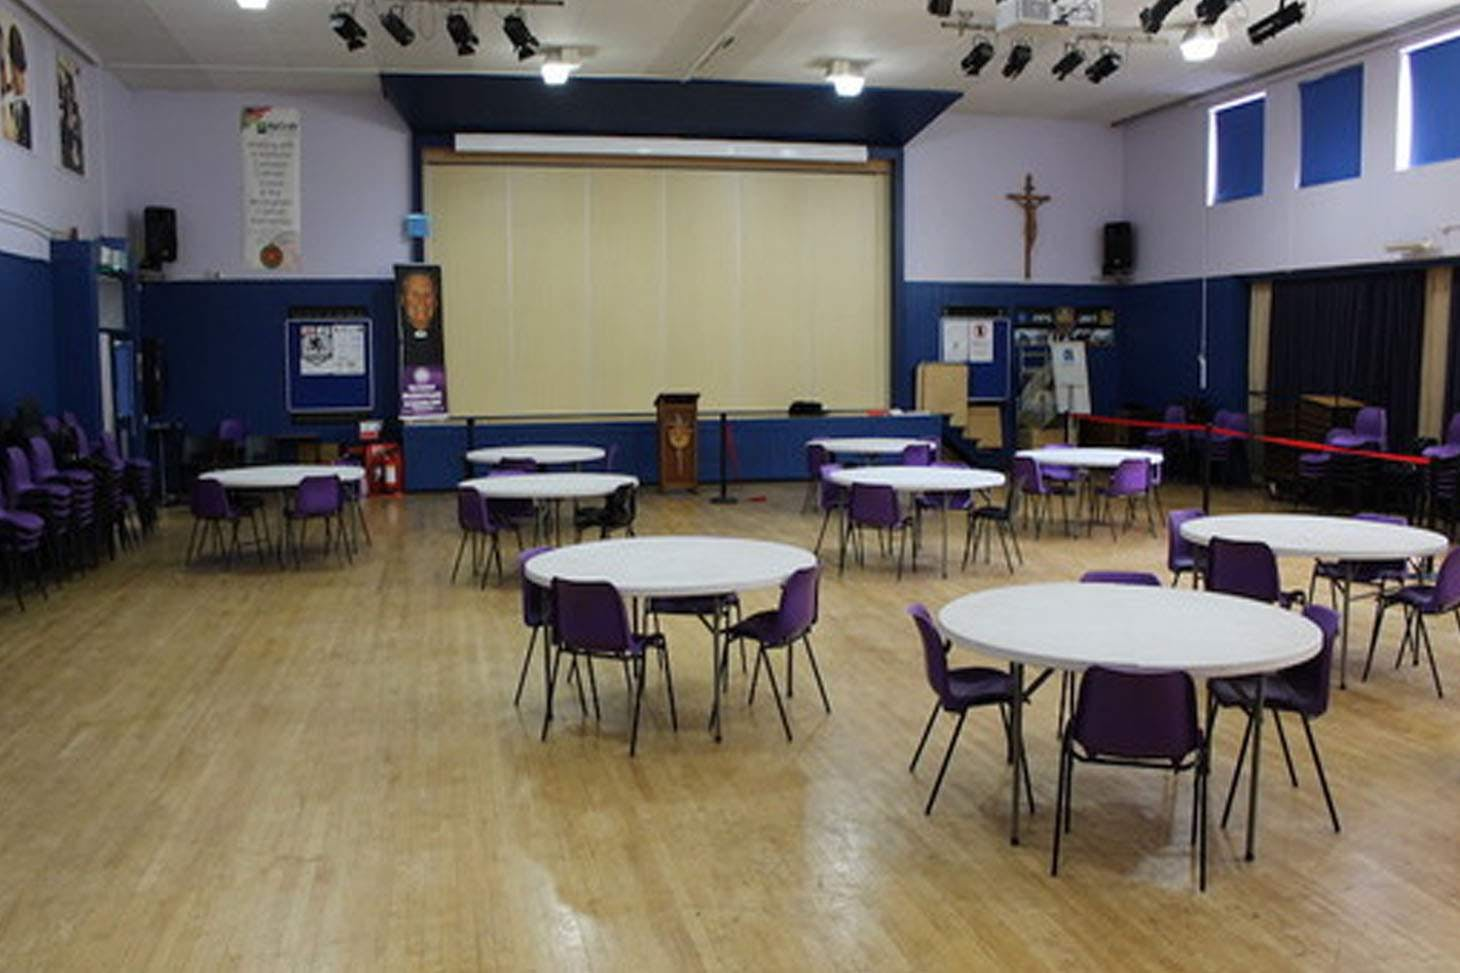 St Edmund Campion Catholic School & Sixth Form Centre Main hall space hire